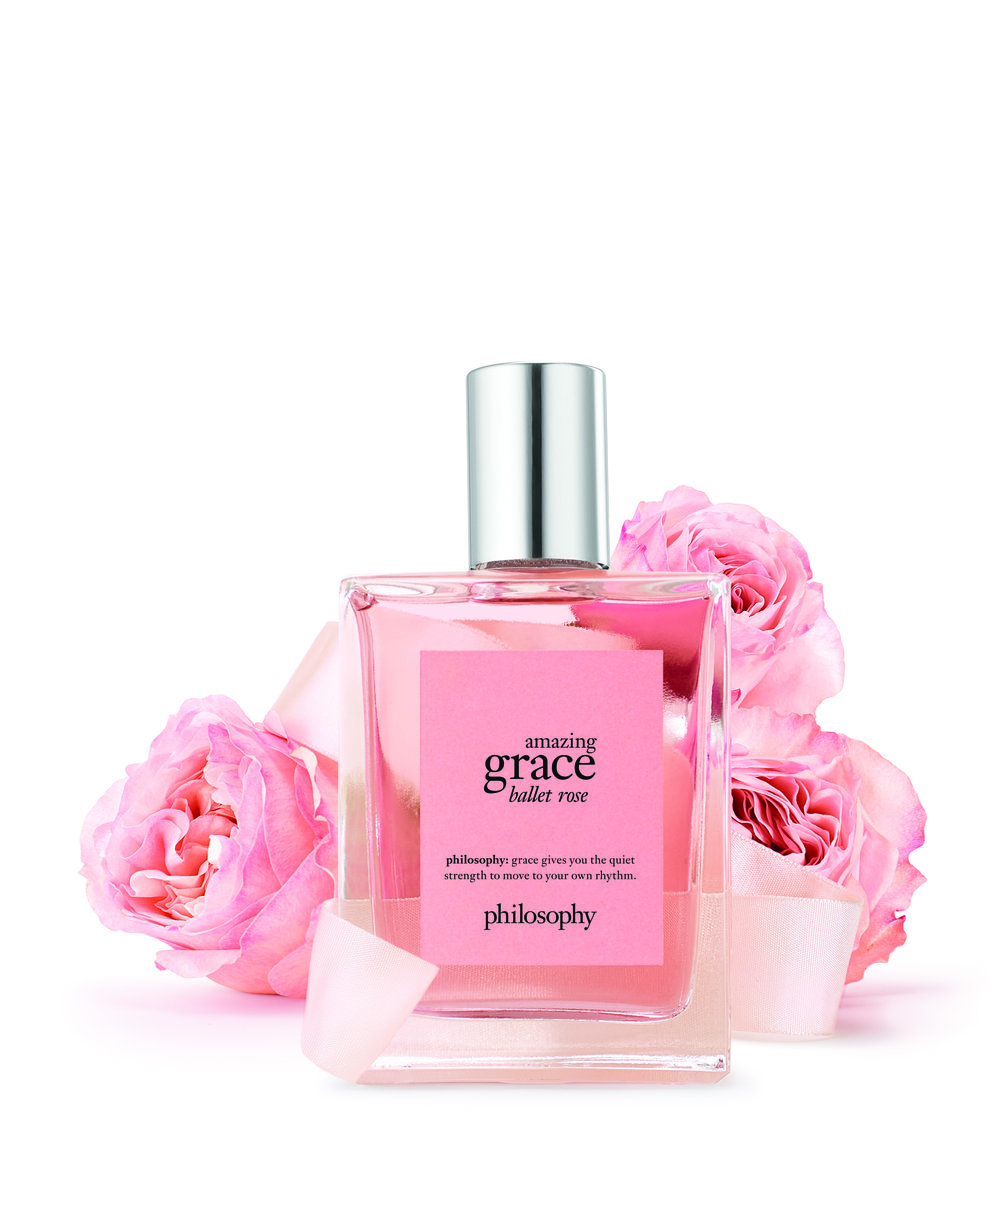 Amazing Grace Ballet Rose EDT.JPEG